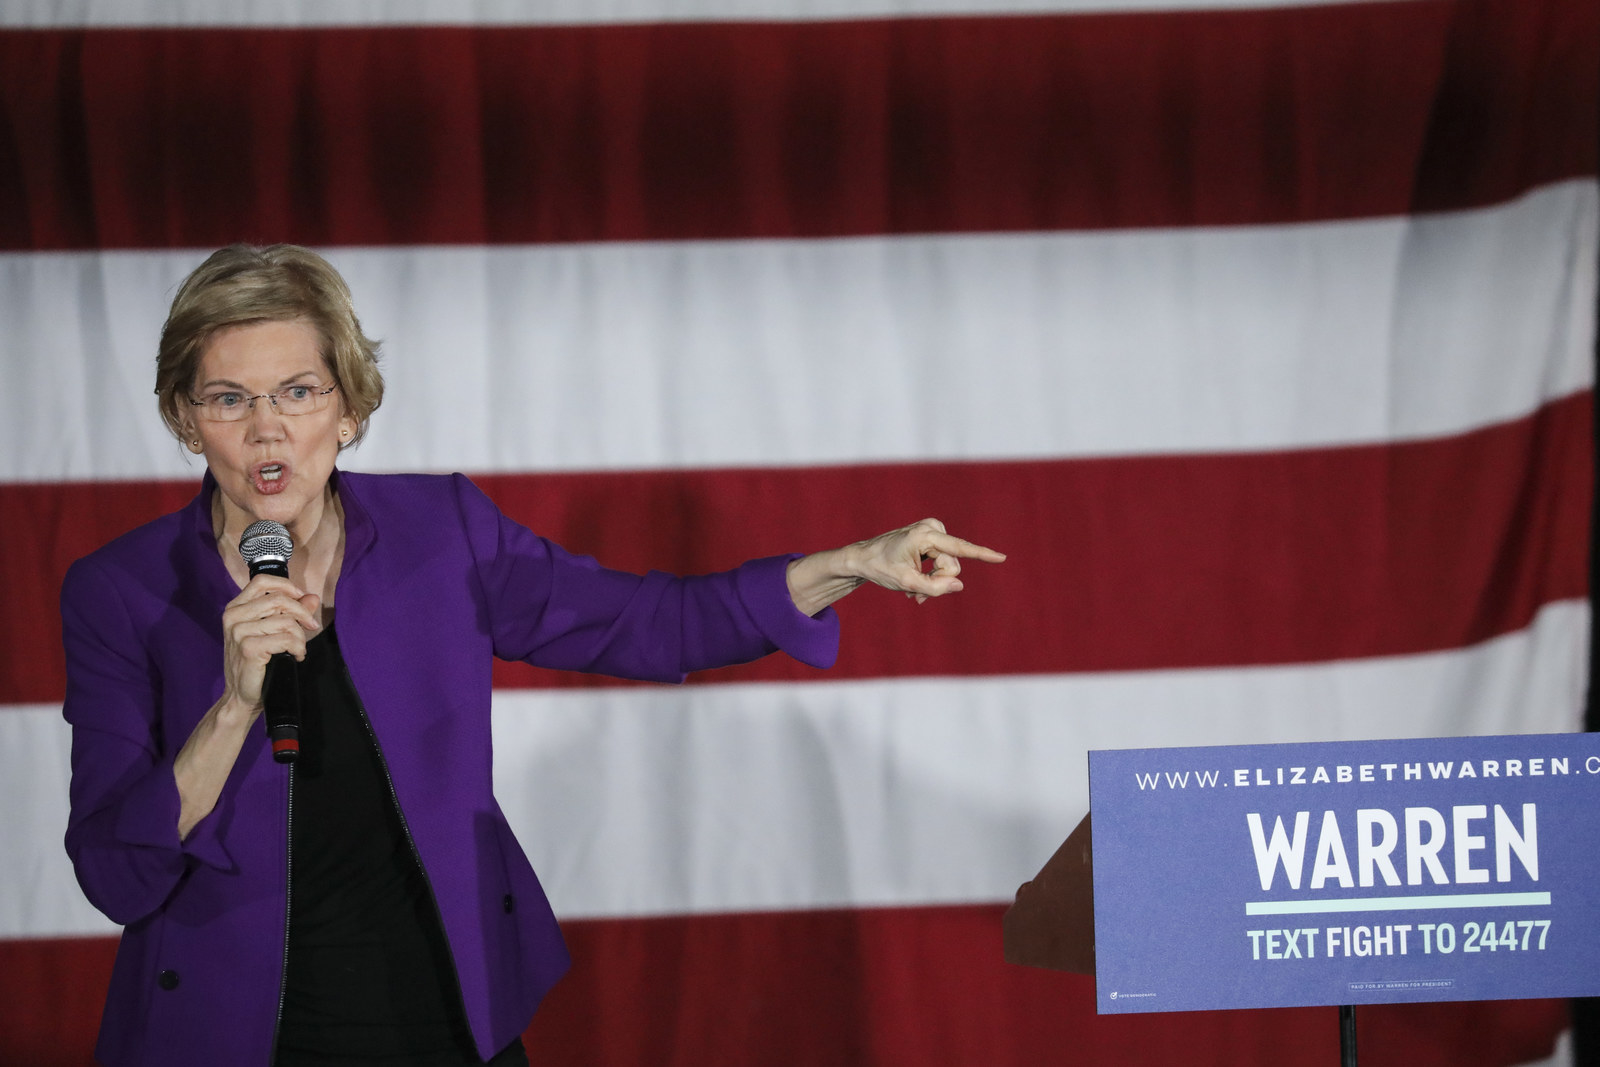 Elizabeth Warren Has The Biggest 2020 Presidential Campaign — And It's Only Growing